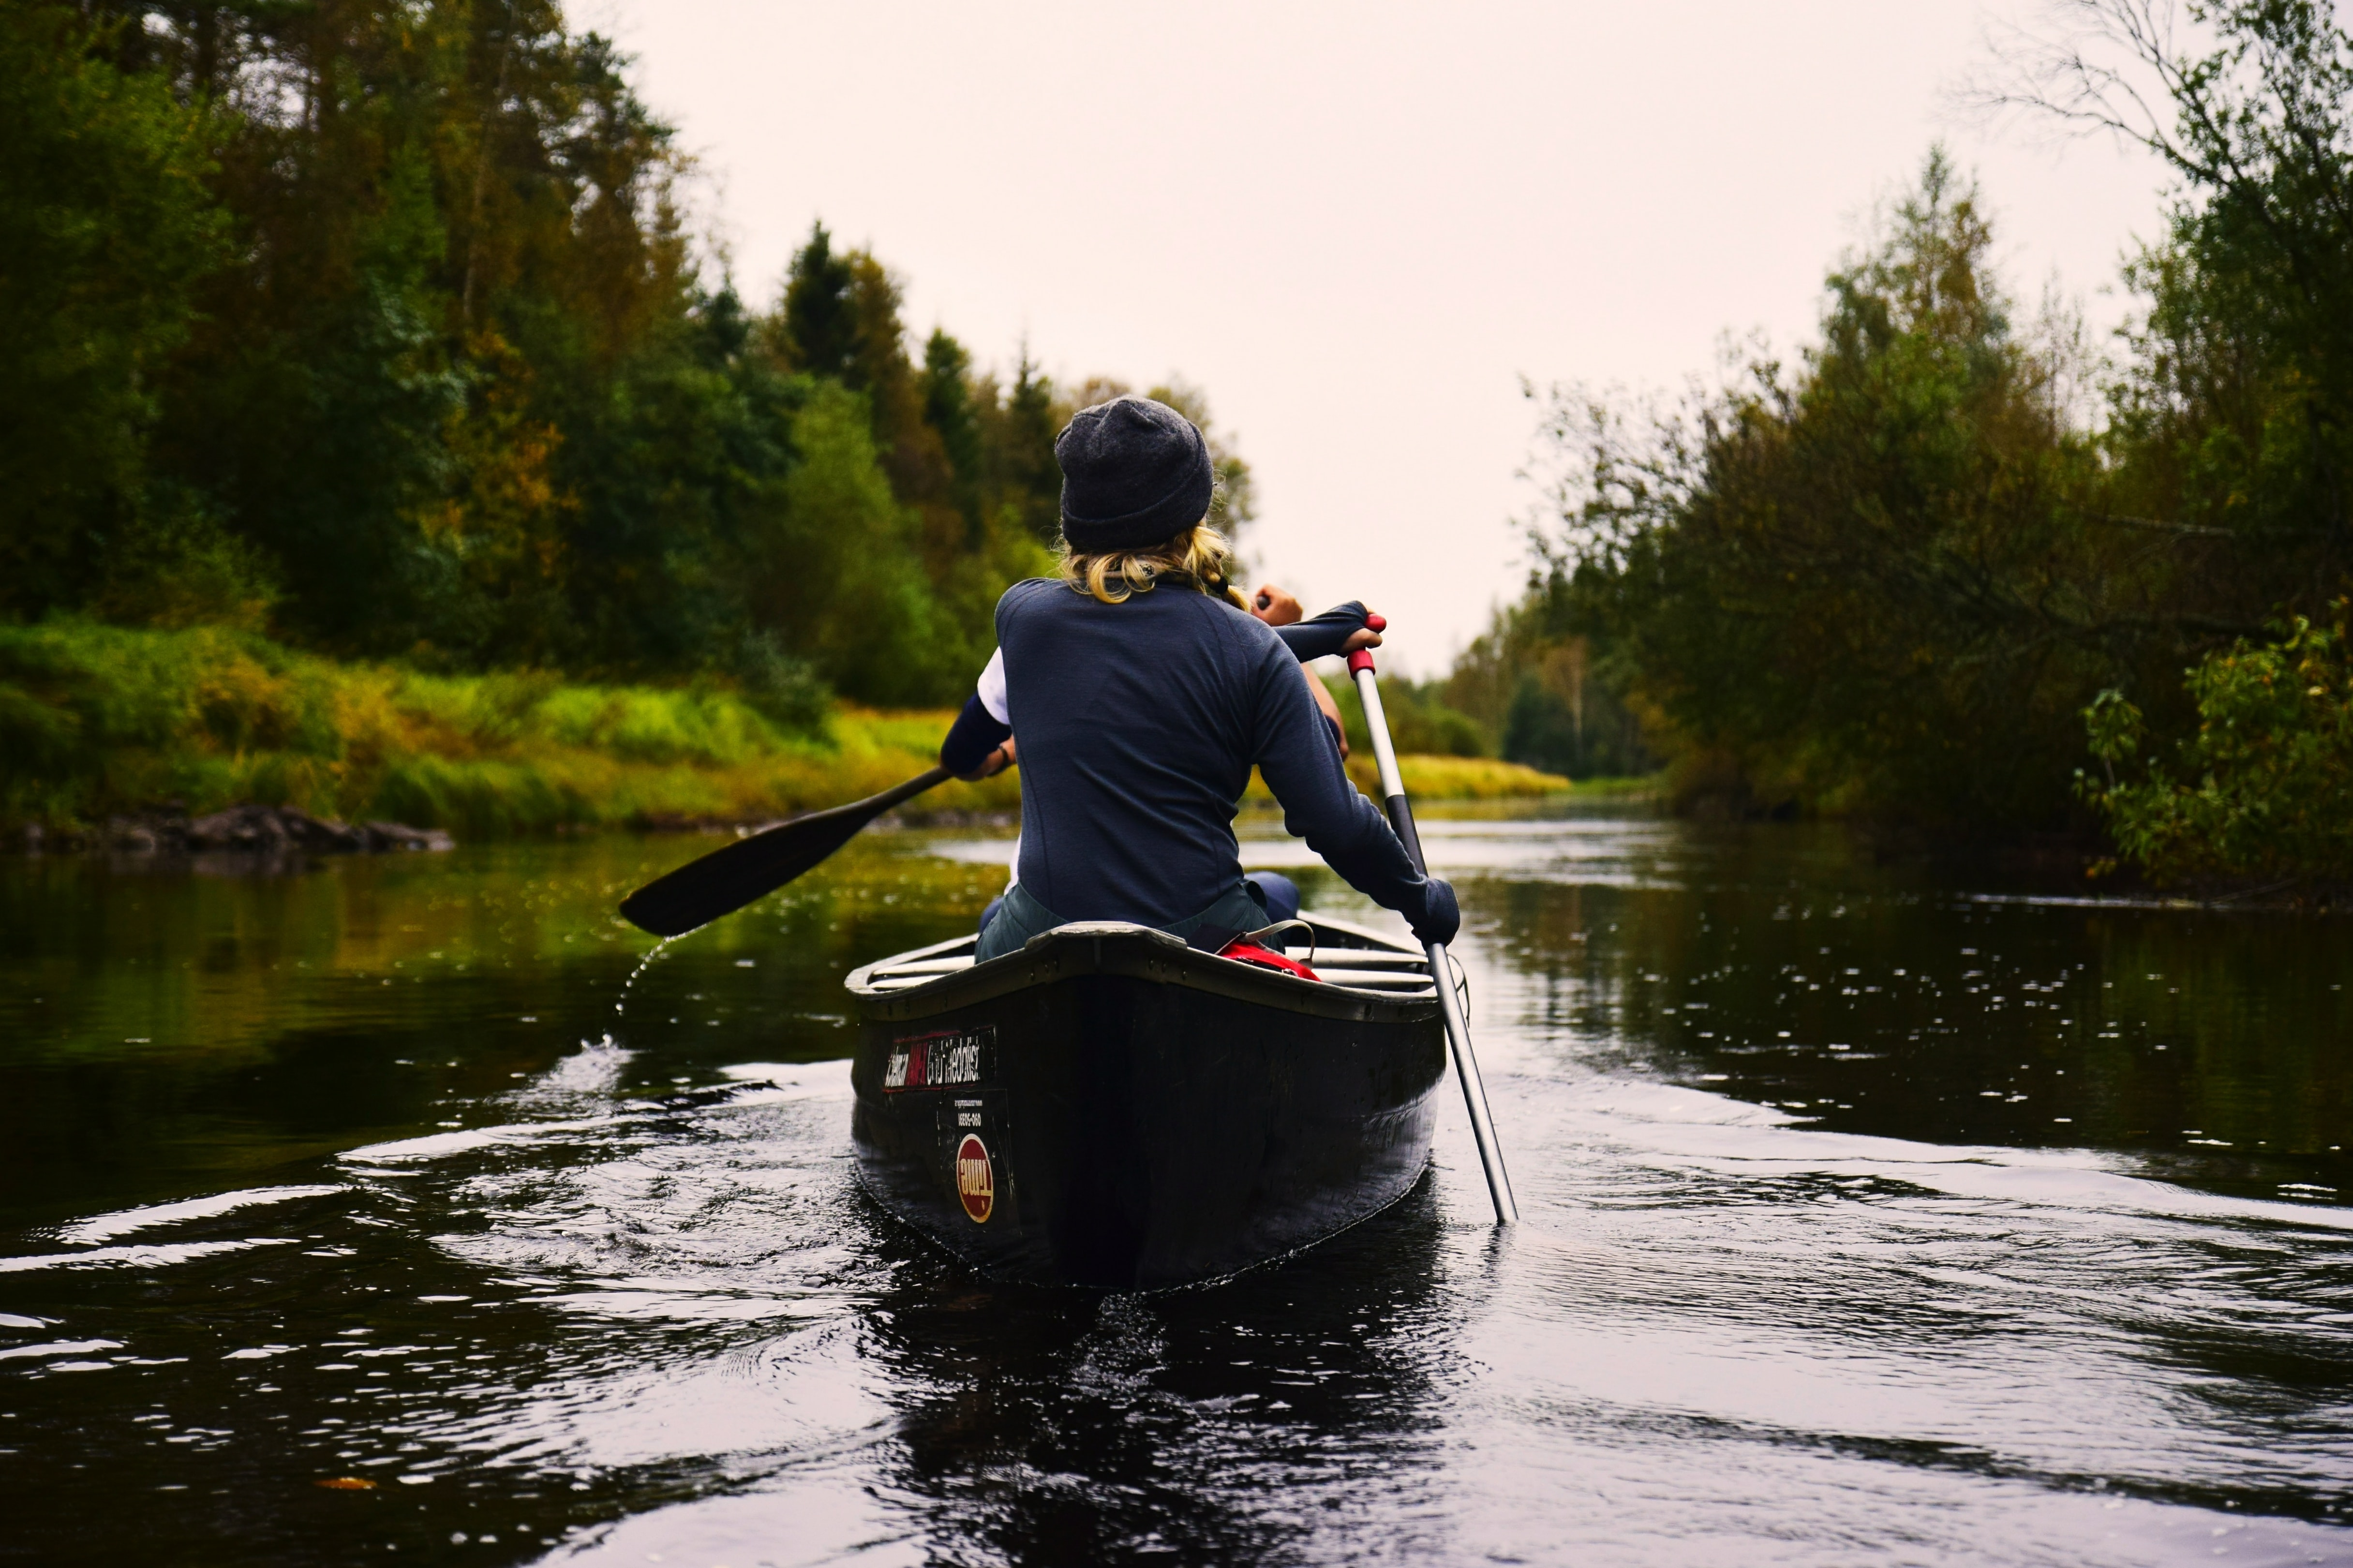 A woman rowing a canoe down a river with green trees along the sides